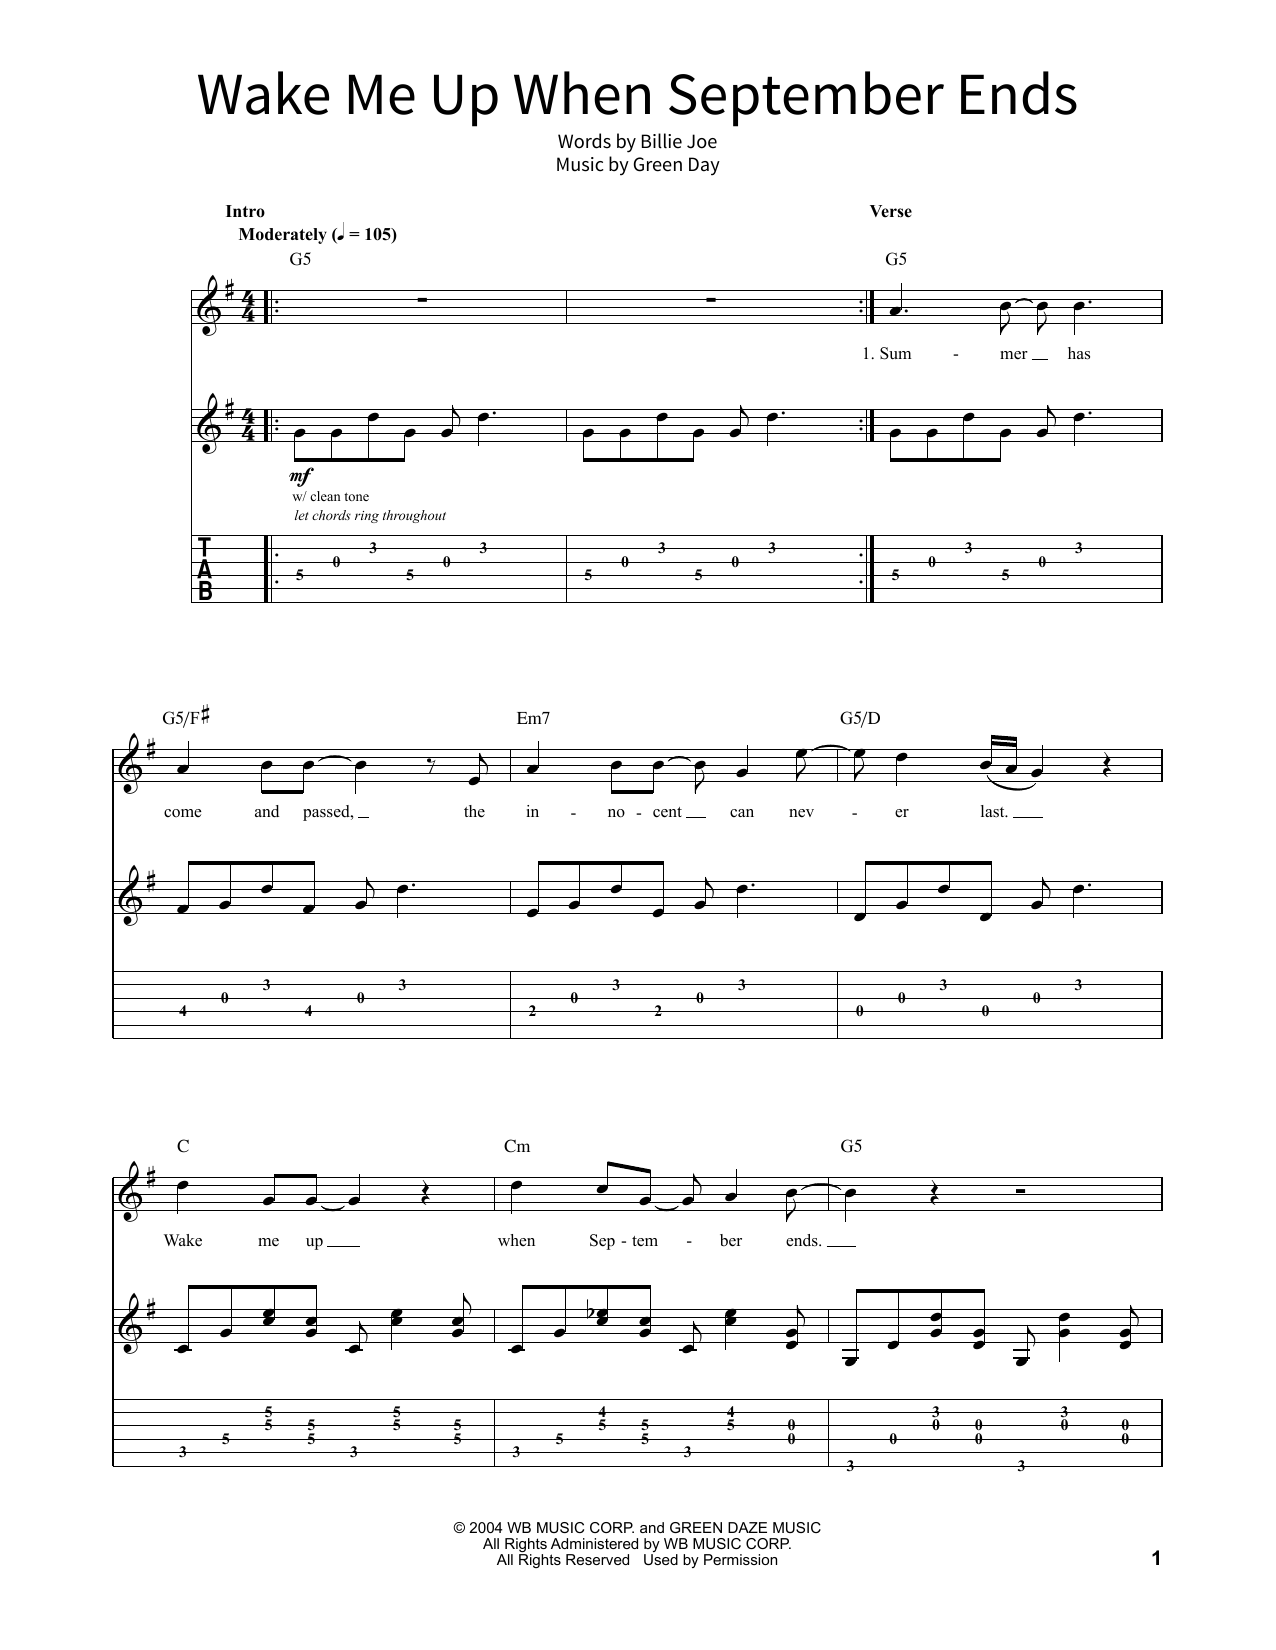 Green Day 'Wake Me Up When September Ends' Sheet Music Notes, Chords    Download Printable School of Rock – Guitar Tab - SKU: 379384